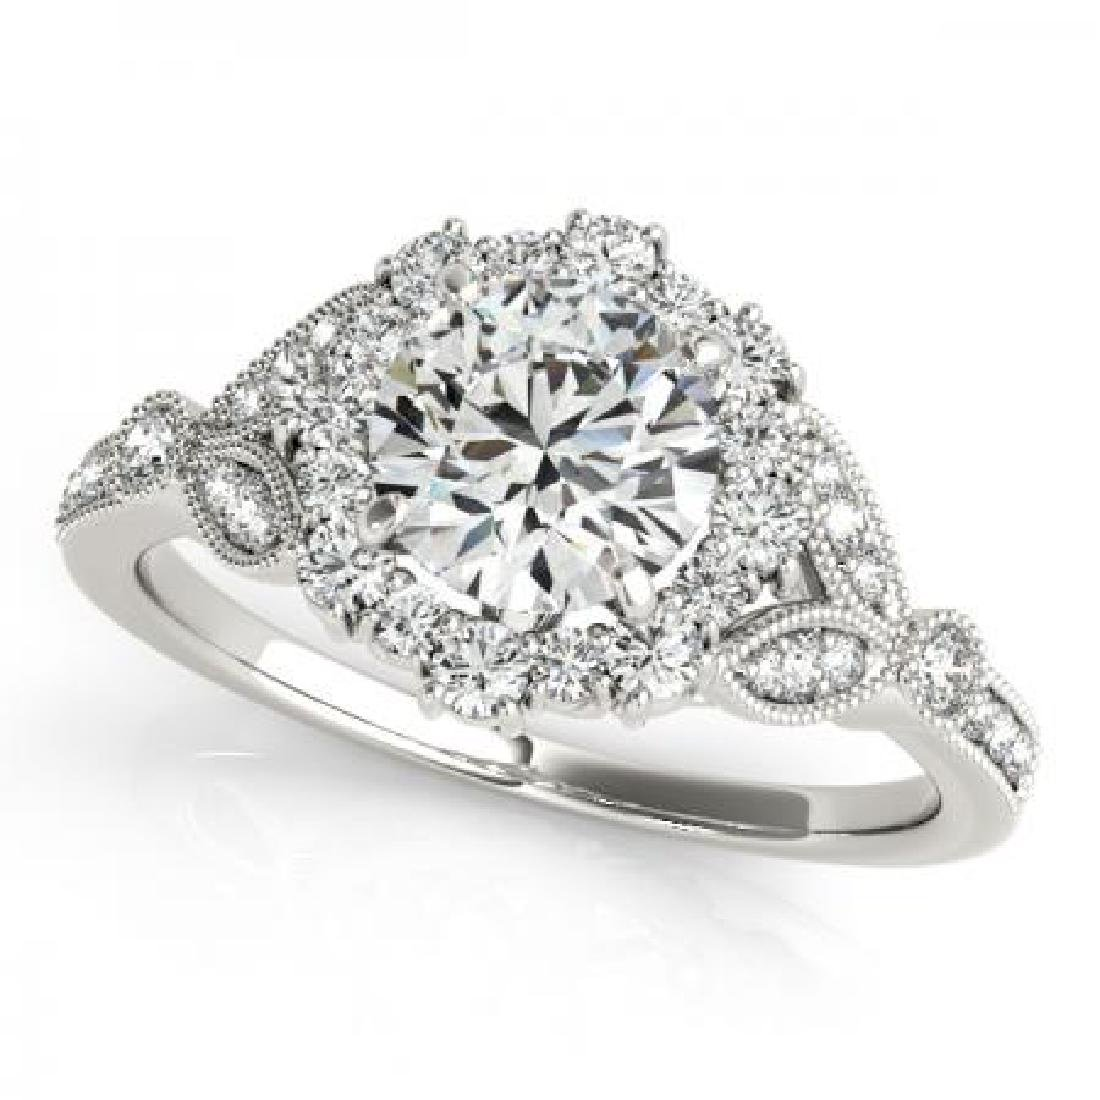 CERTIFIED PLATINUM 1.13 CT G-H/VS-SI1 DIAMOND HALO ENGA